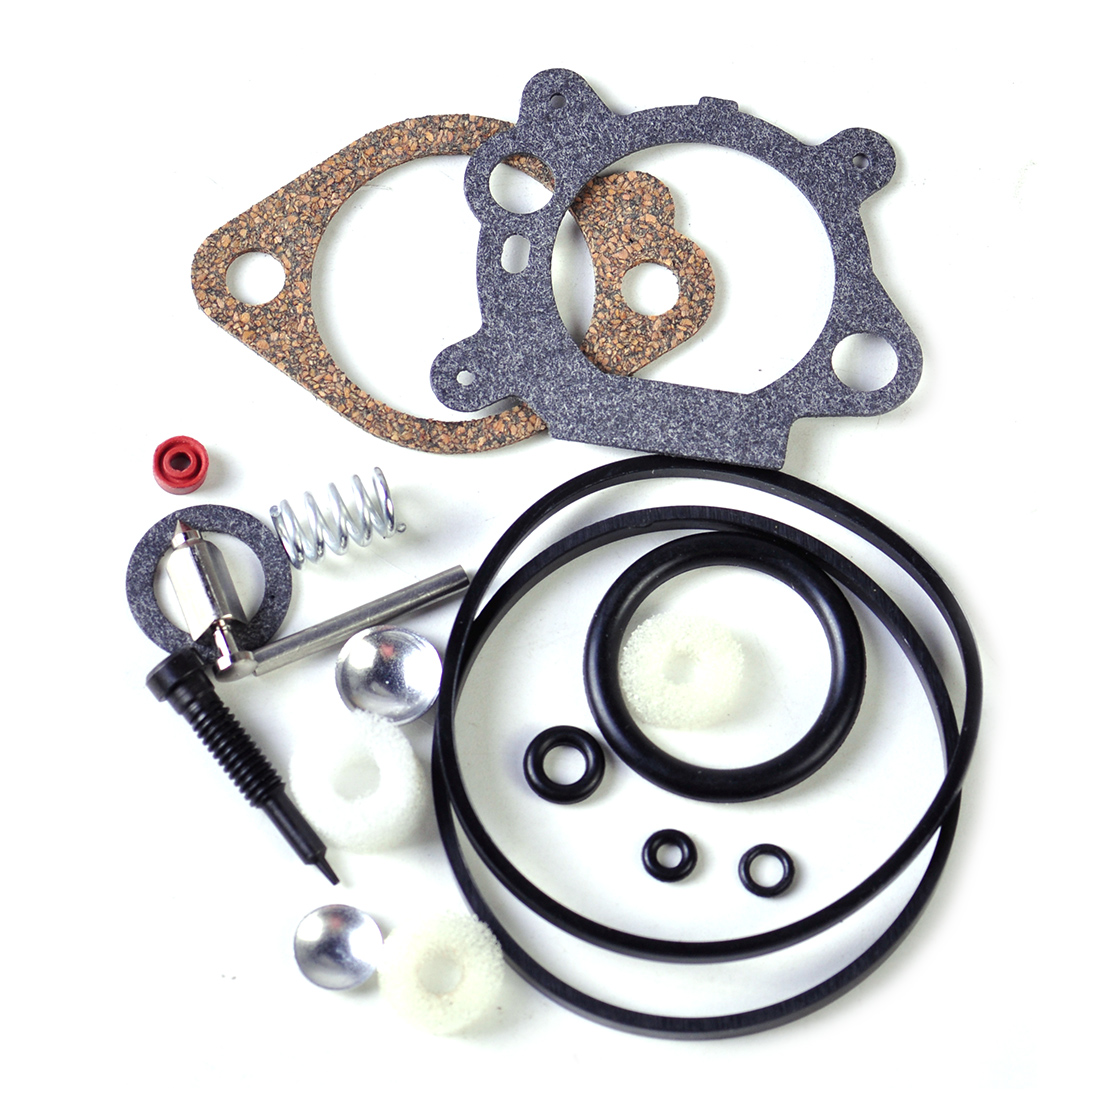 LETAOSK Carburetor Carb Gasket Rebuild Repair Kit Fit For Briggs & Stratton 492495 493762 498260